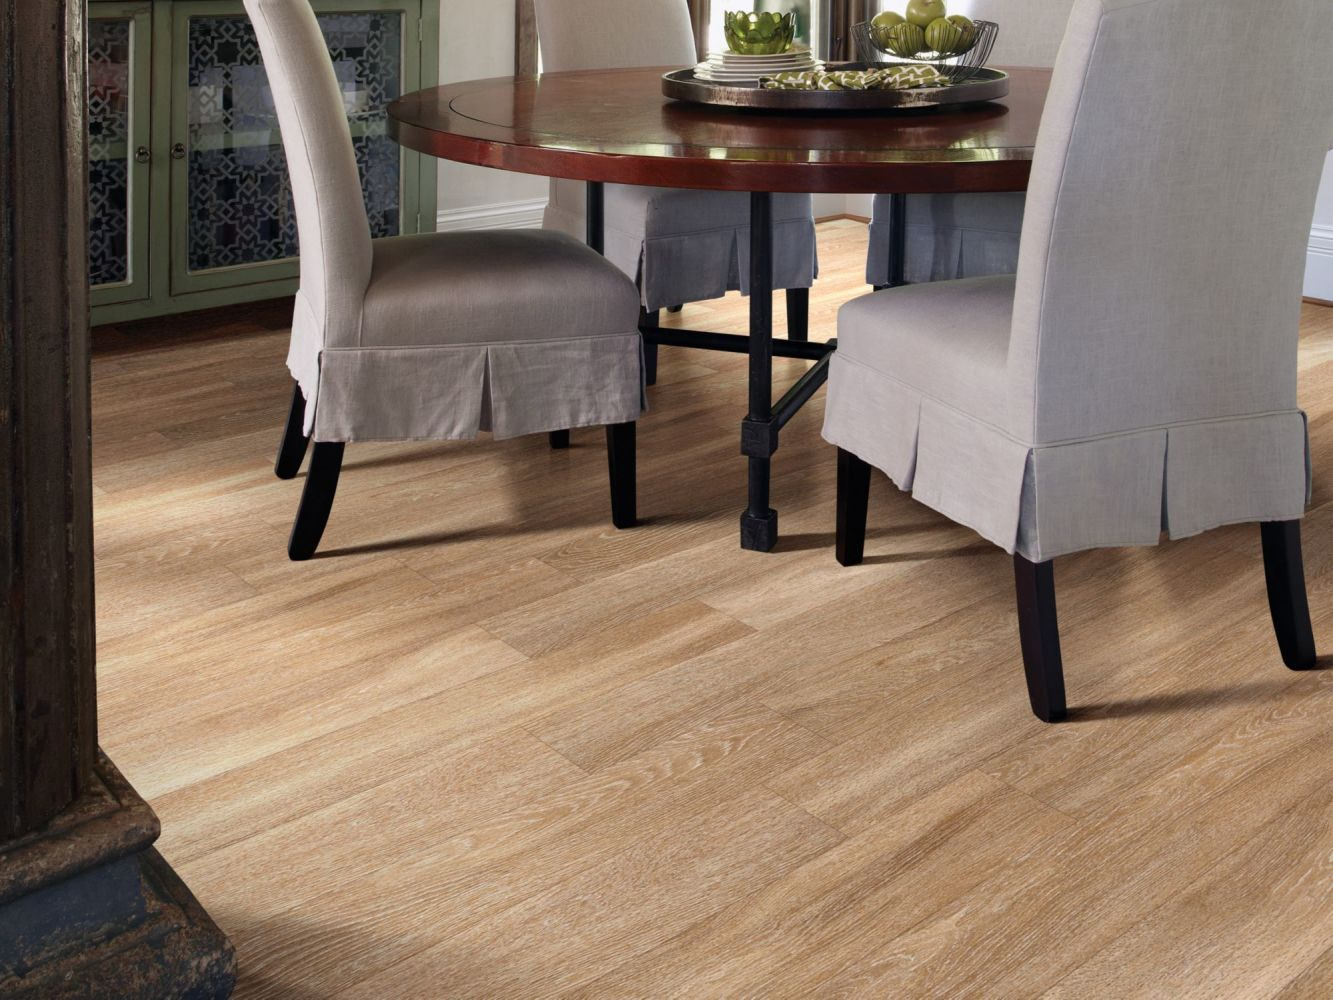 Shaw Floors 5th And Main Metropolis 6 II Five Points 00235_5M235